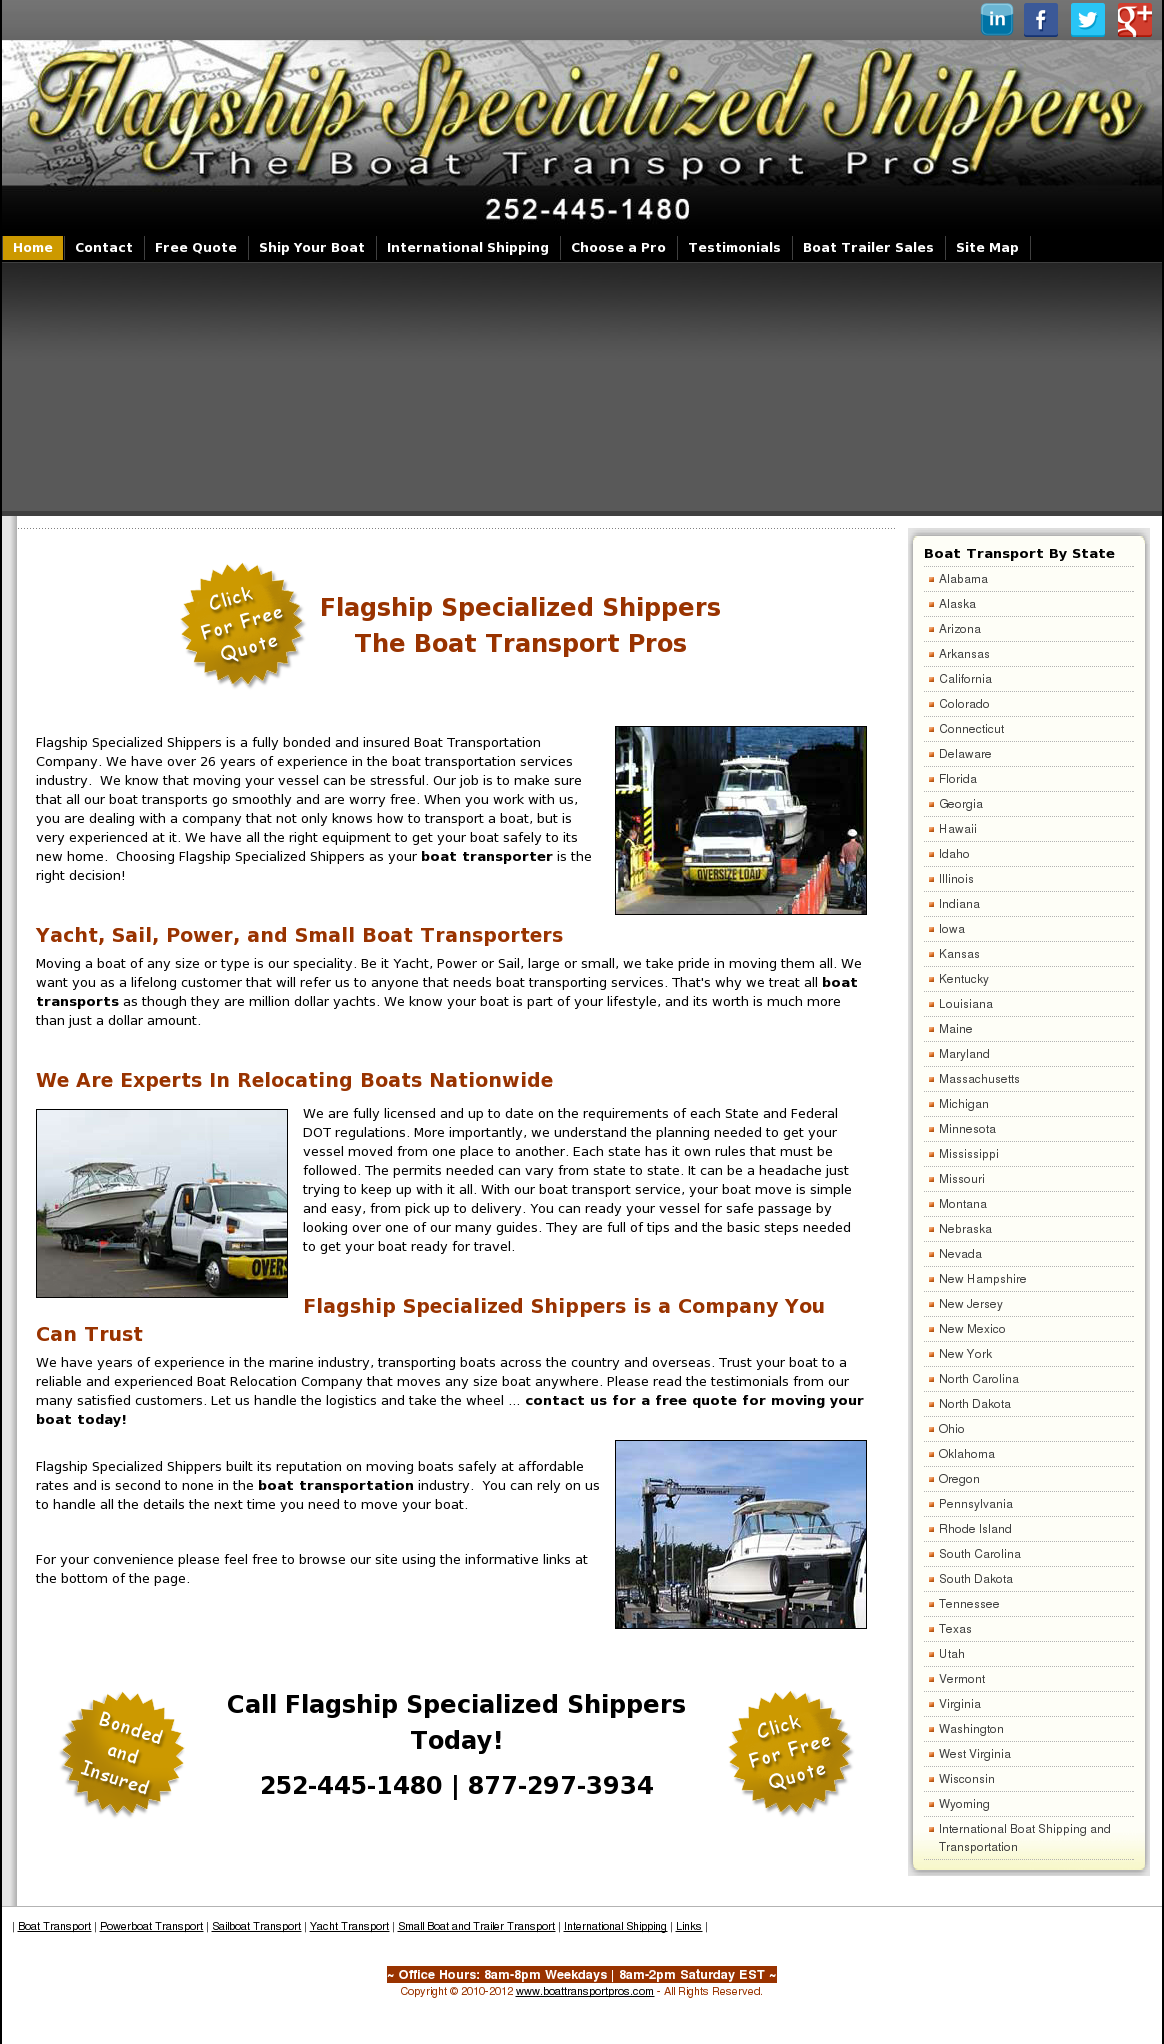 Flagship Specialized Shippers - The Boat Transport Pros